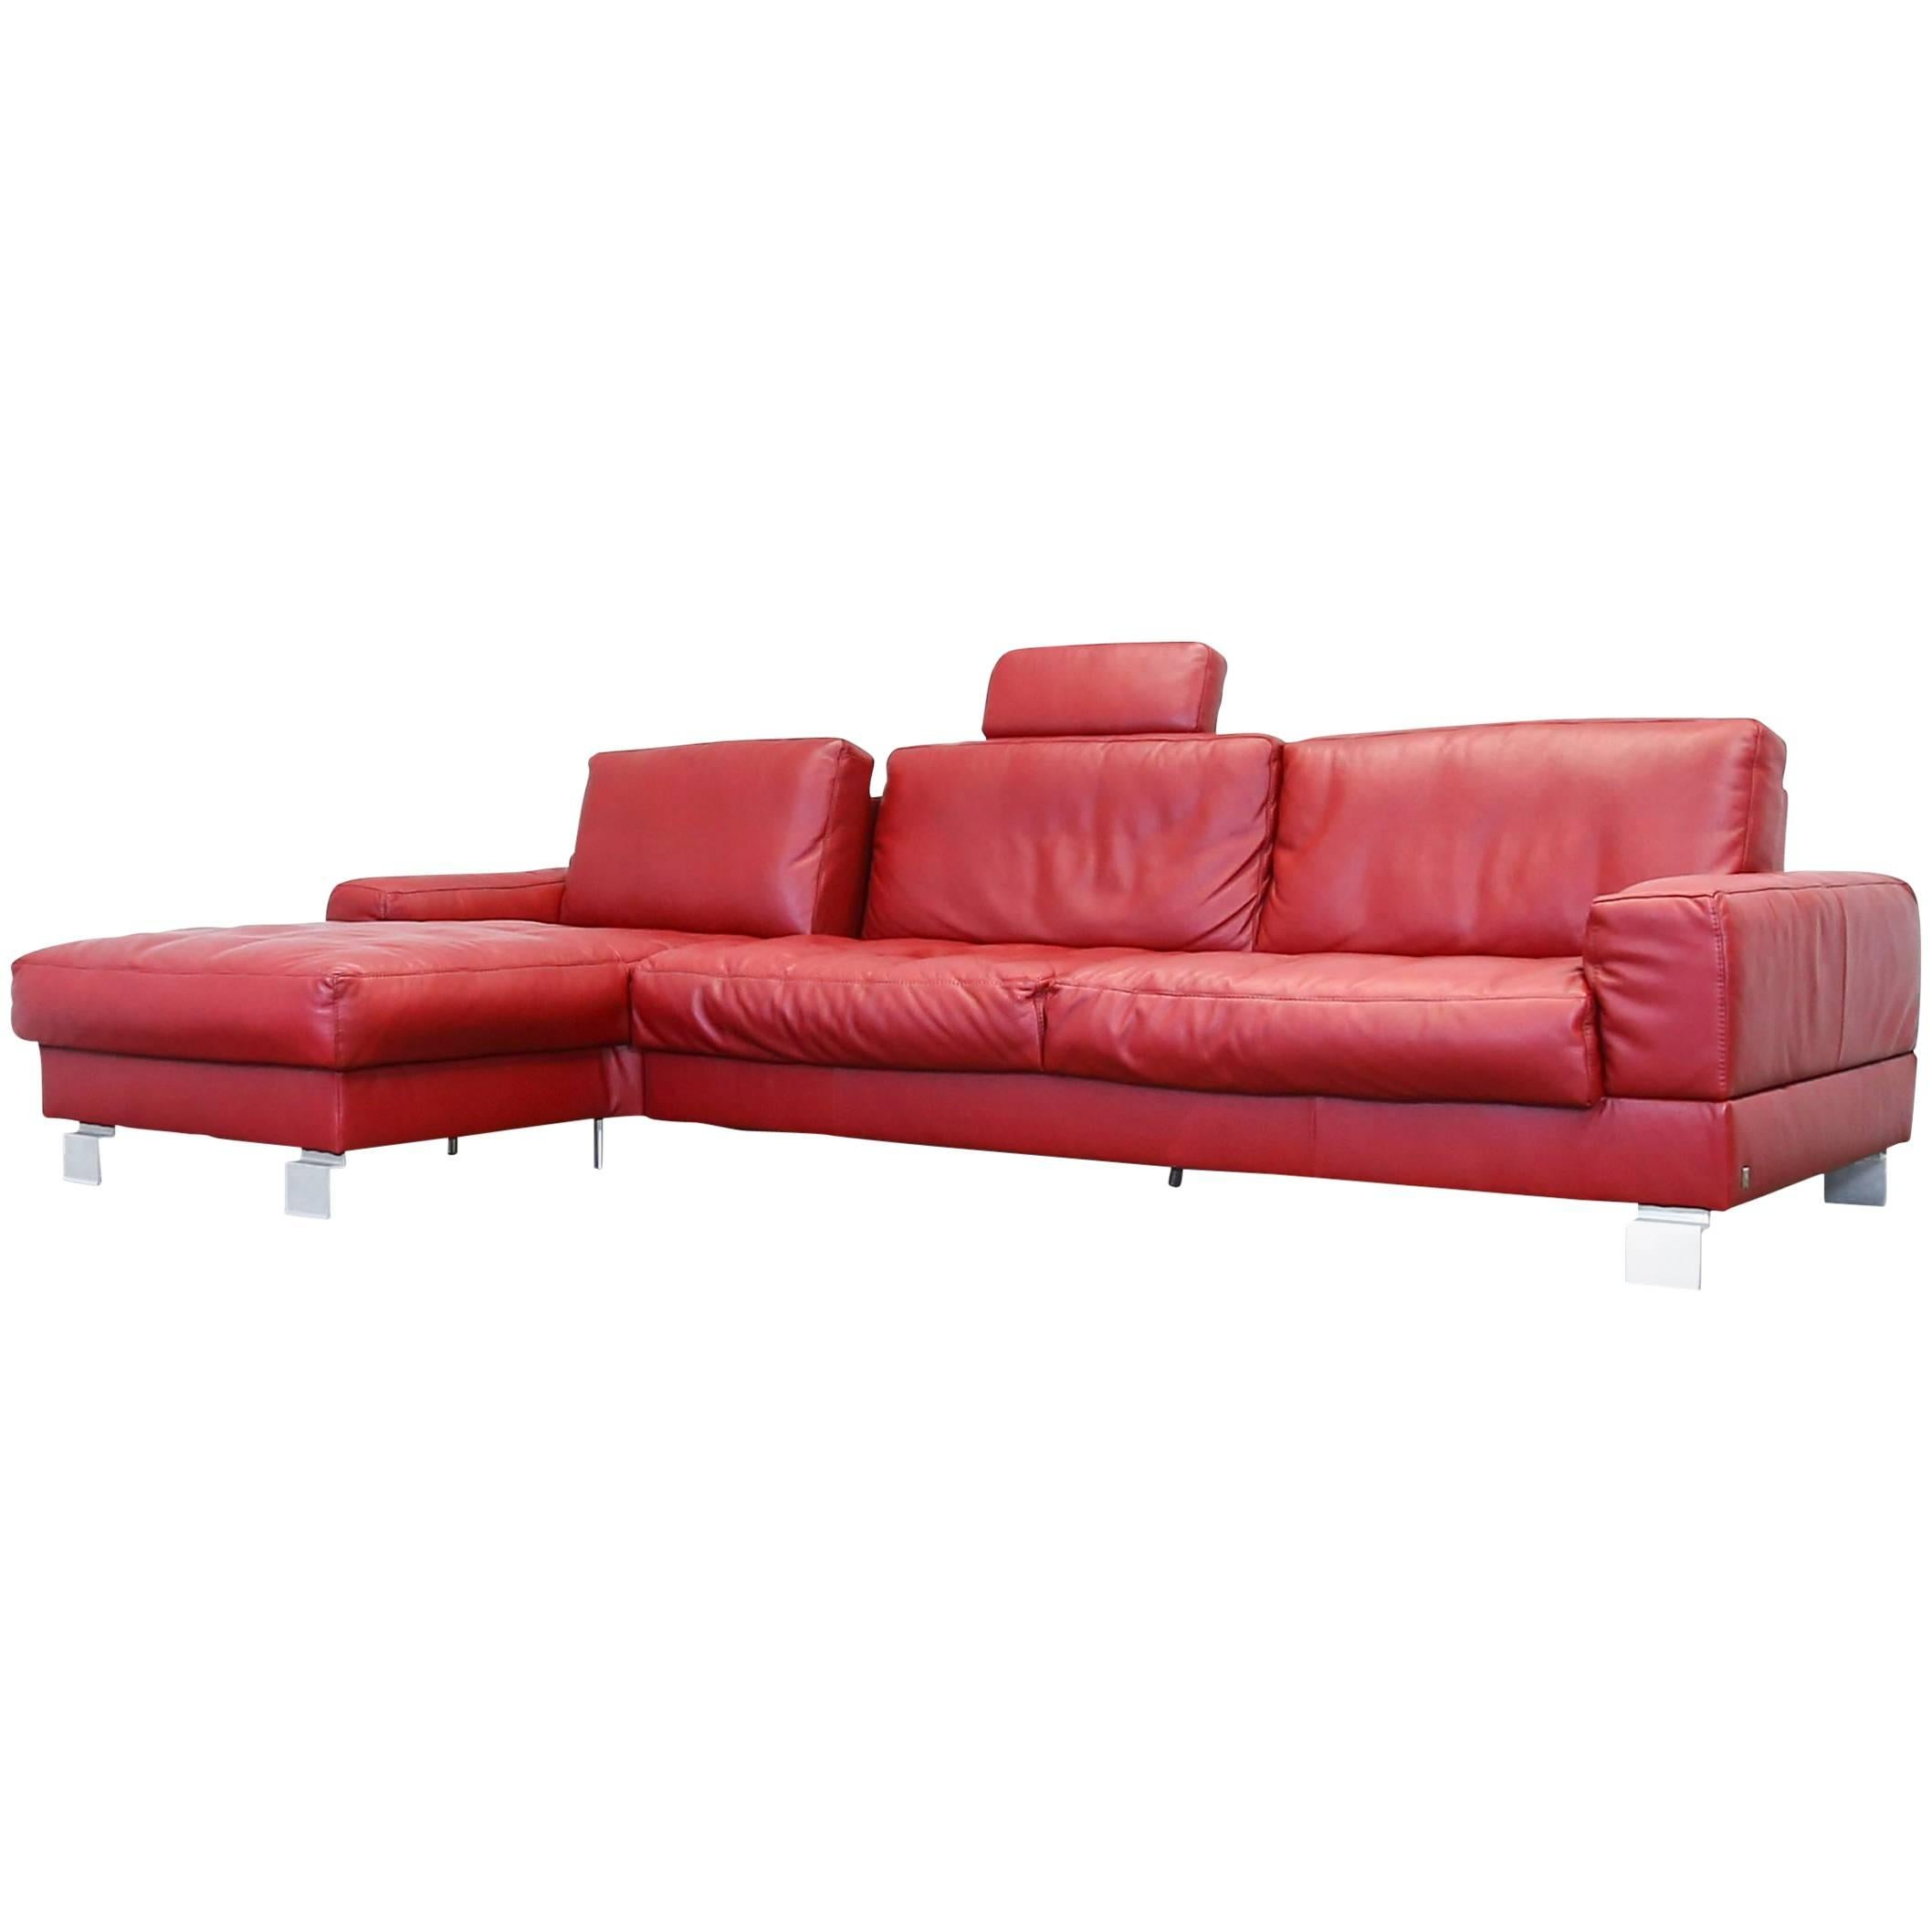 Musterring Cornersofa Red Leather Couch Designer Sofa Modern Function  Bordeaux For Sale